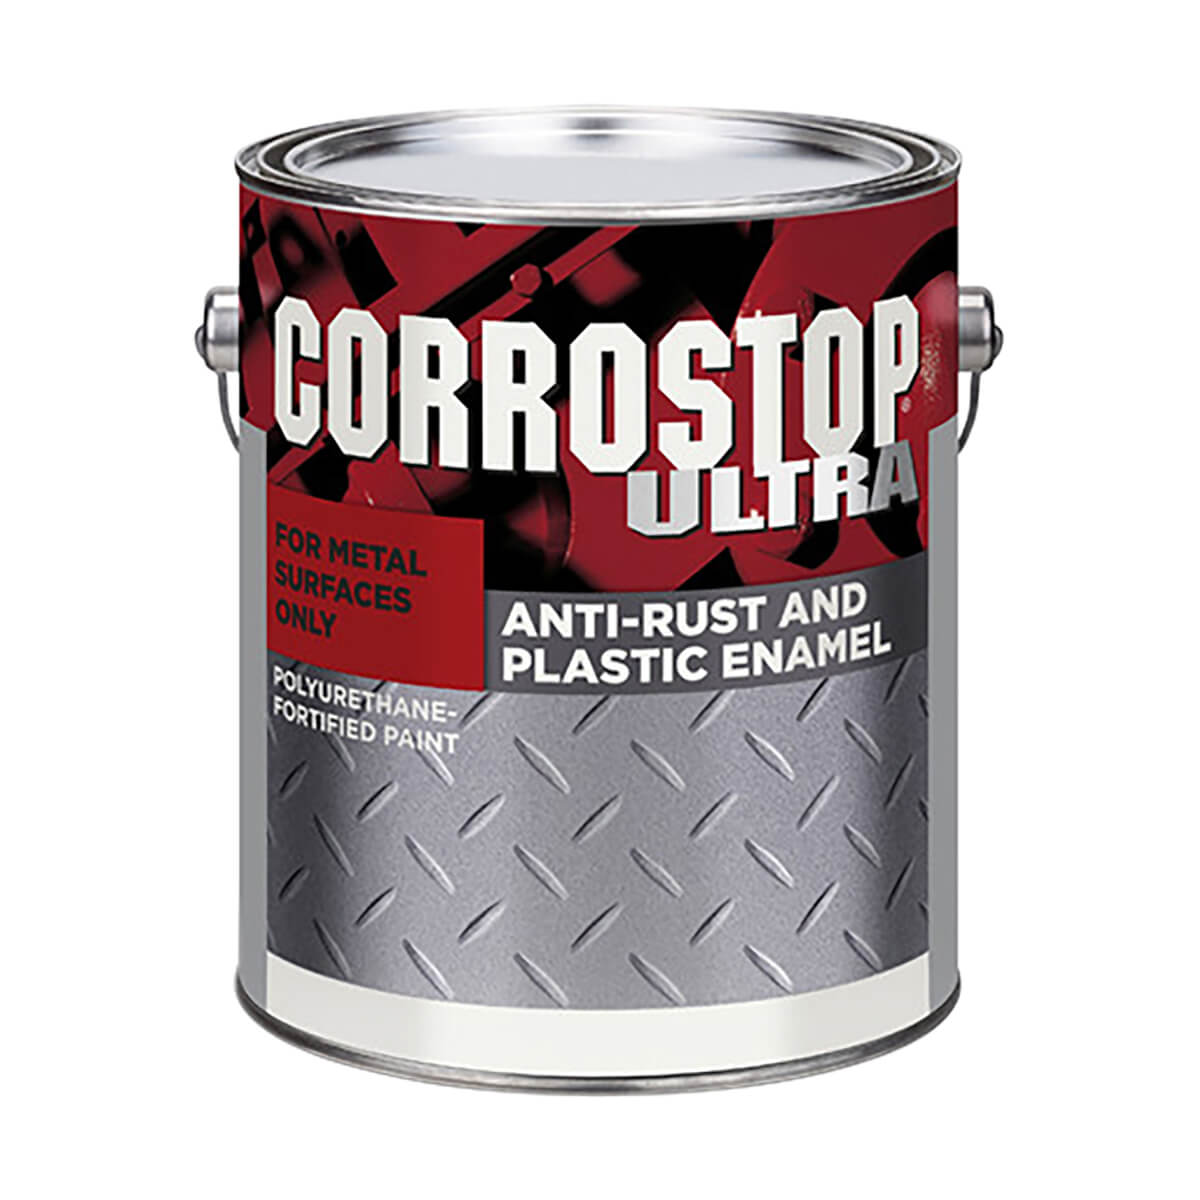 Corrostop - Anti-rust Alkyd Paint - Harvester Red - 3.78 L